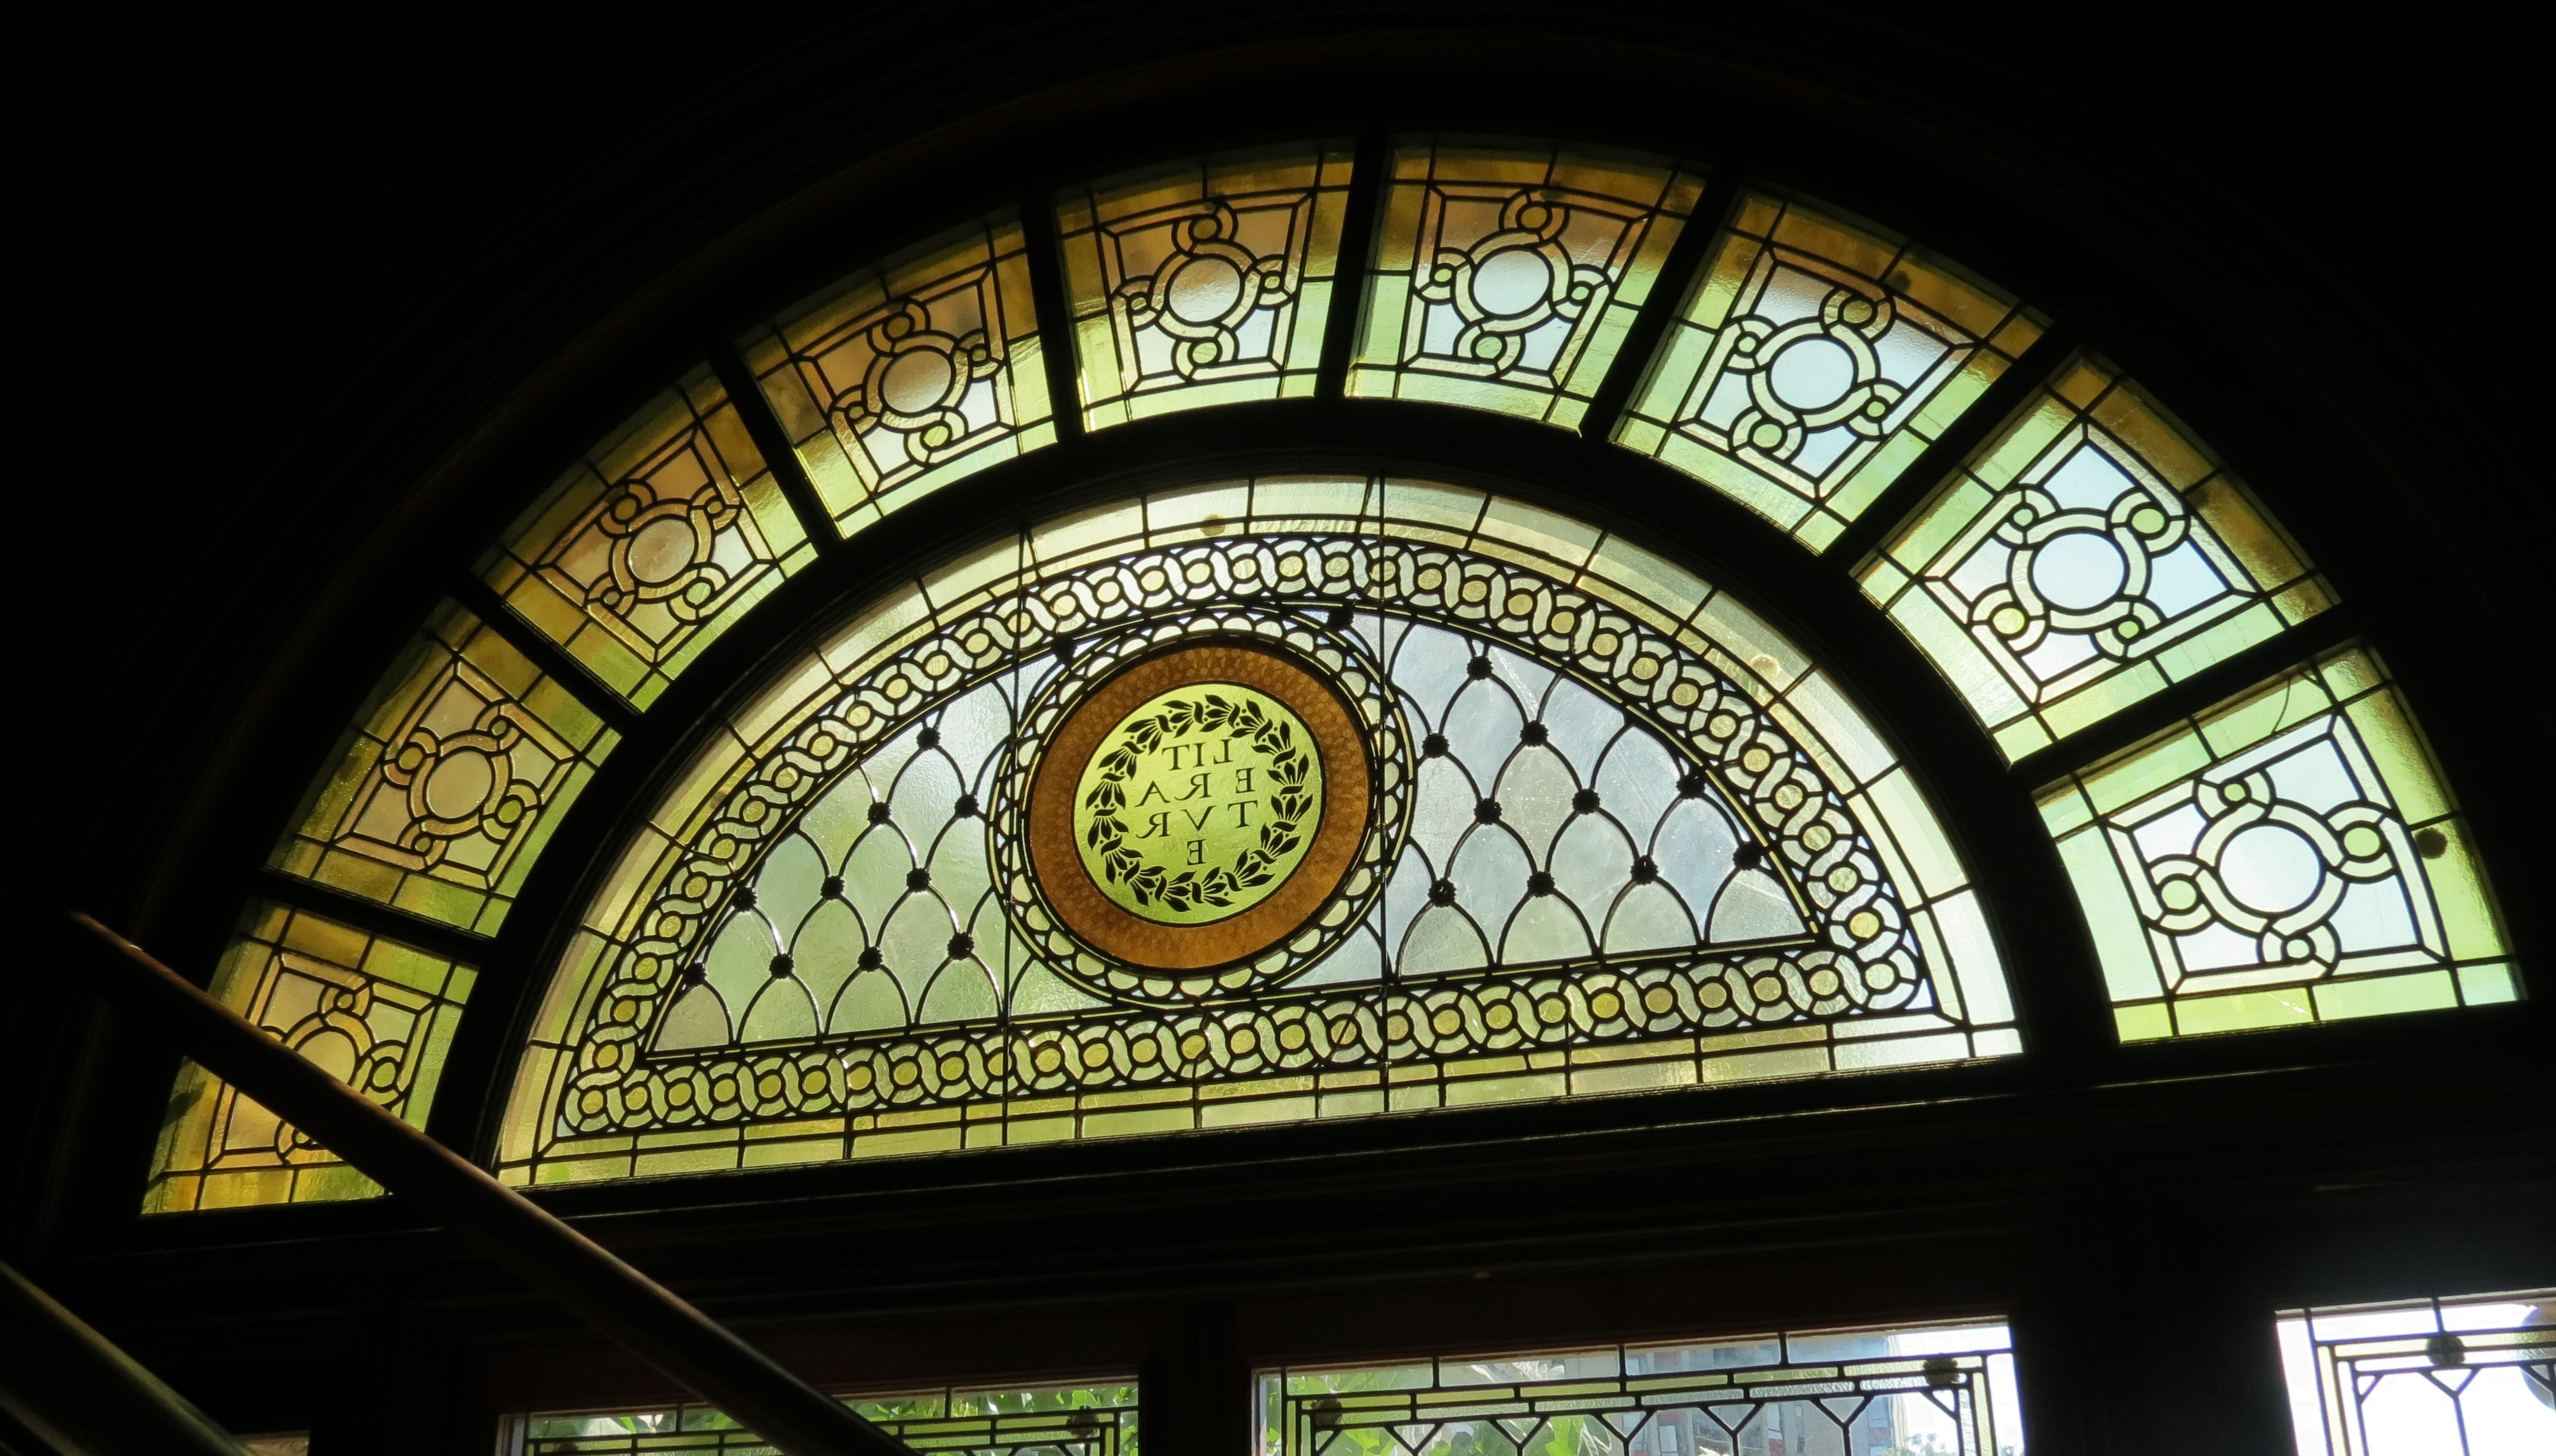 Springfield Museums Awarded Prestigious Grant From Institute Of Museum And Library Services